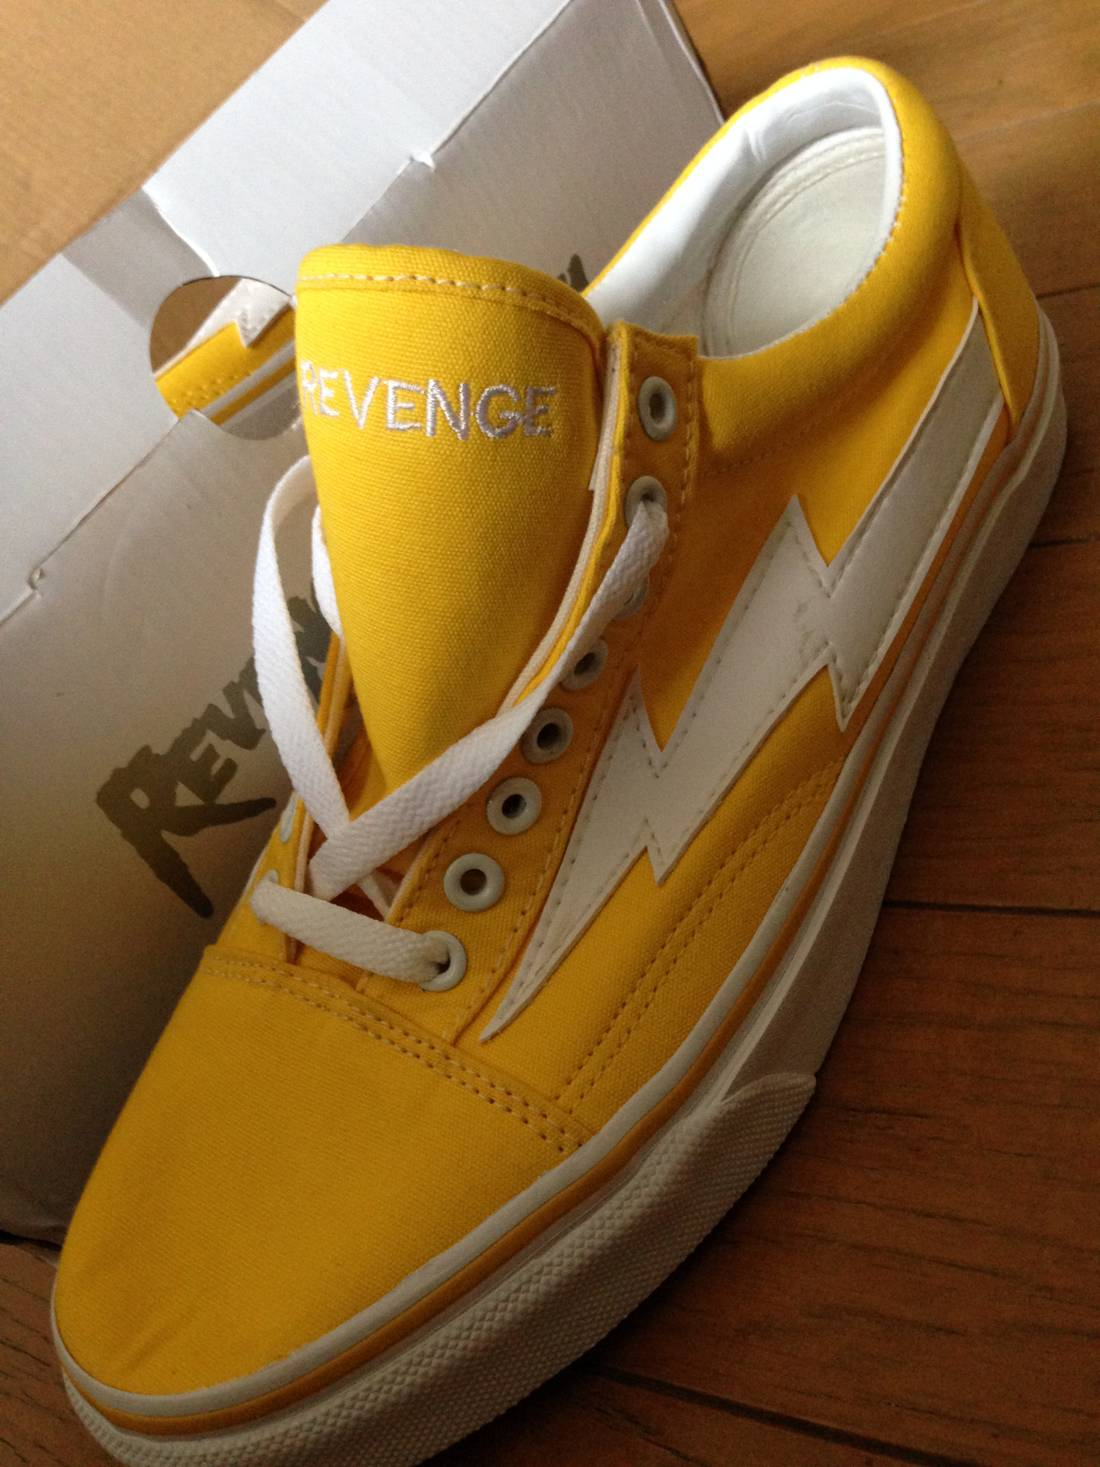 5a7c59f628674a ... Shades of Ian Connor Yellow Revenge X Storm Vol. 1 Size US 10 EU 43 ...